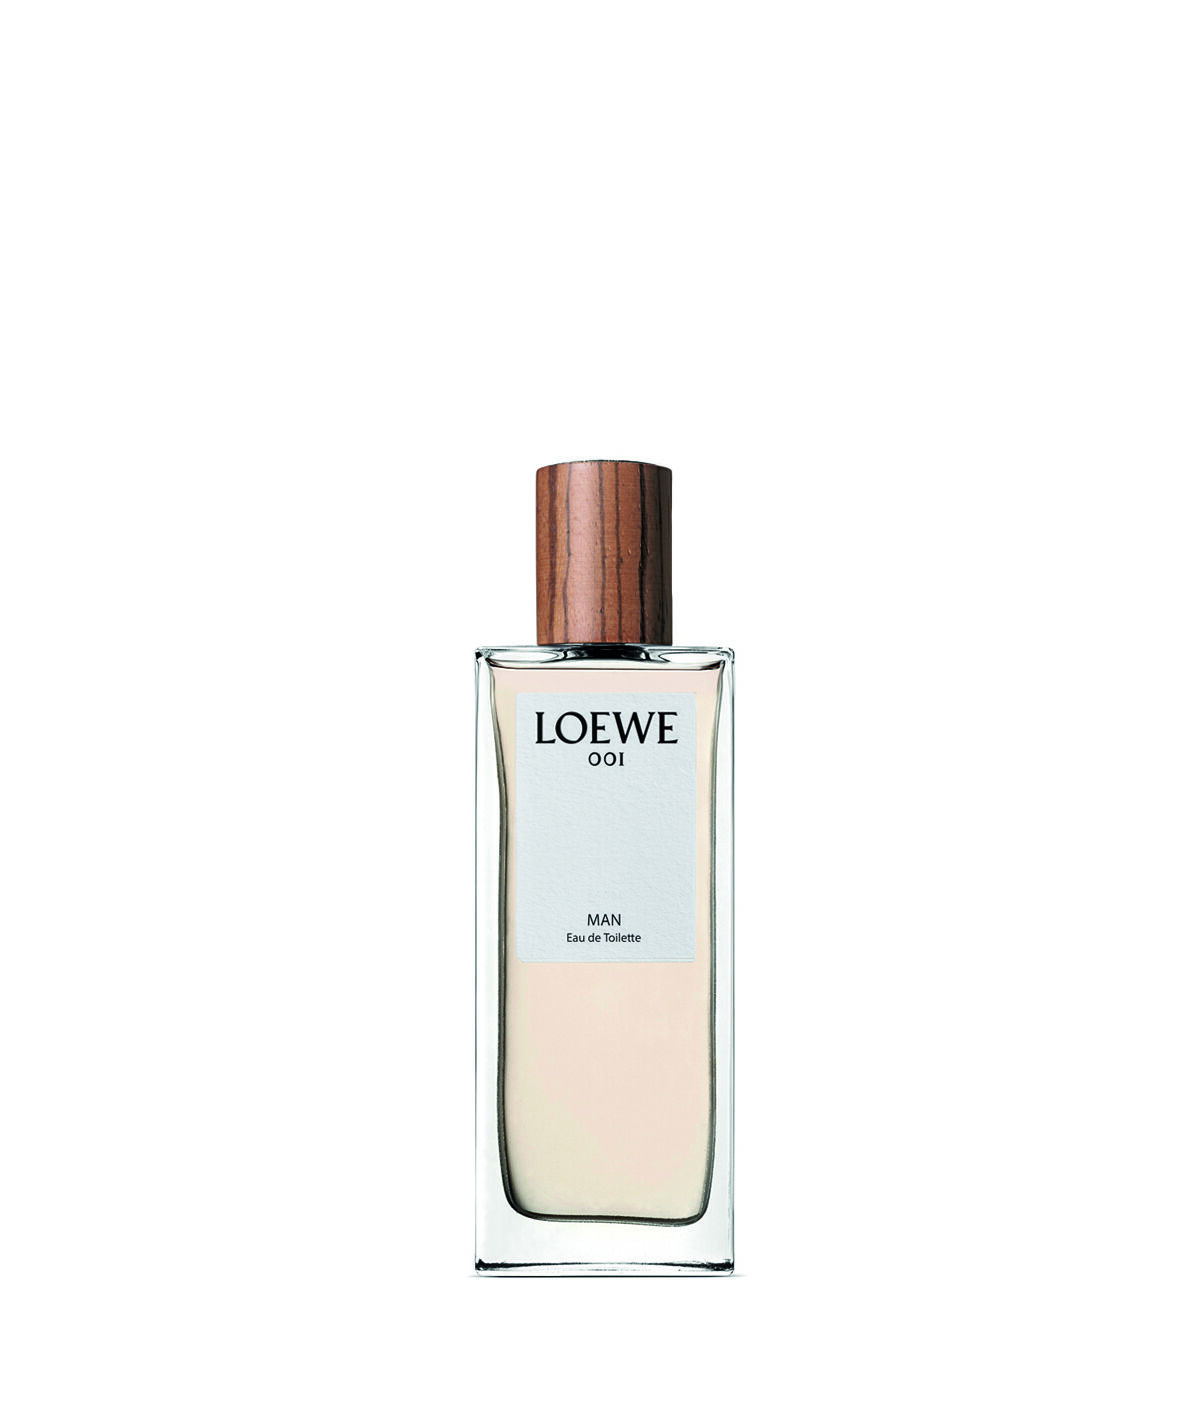 LOEWE Loewe 001 Man Edt 50Ml Sin Color all